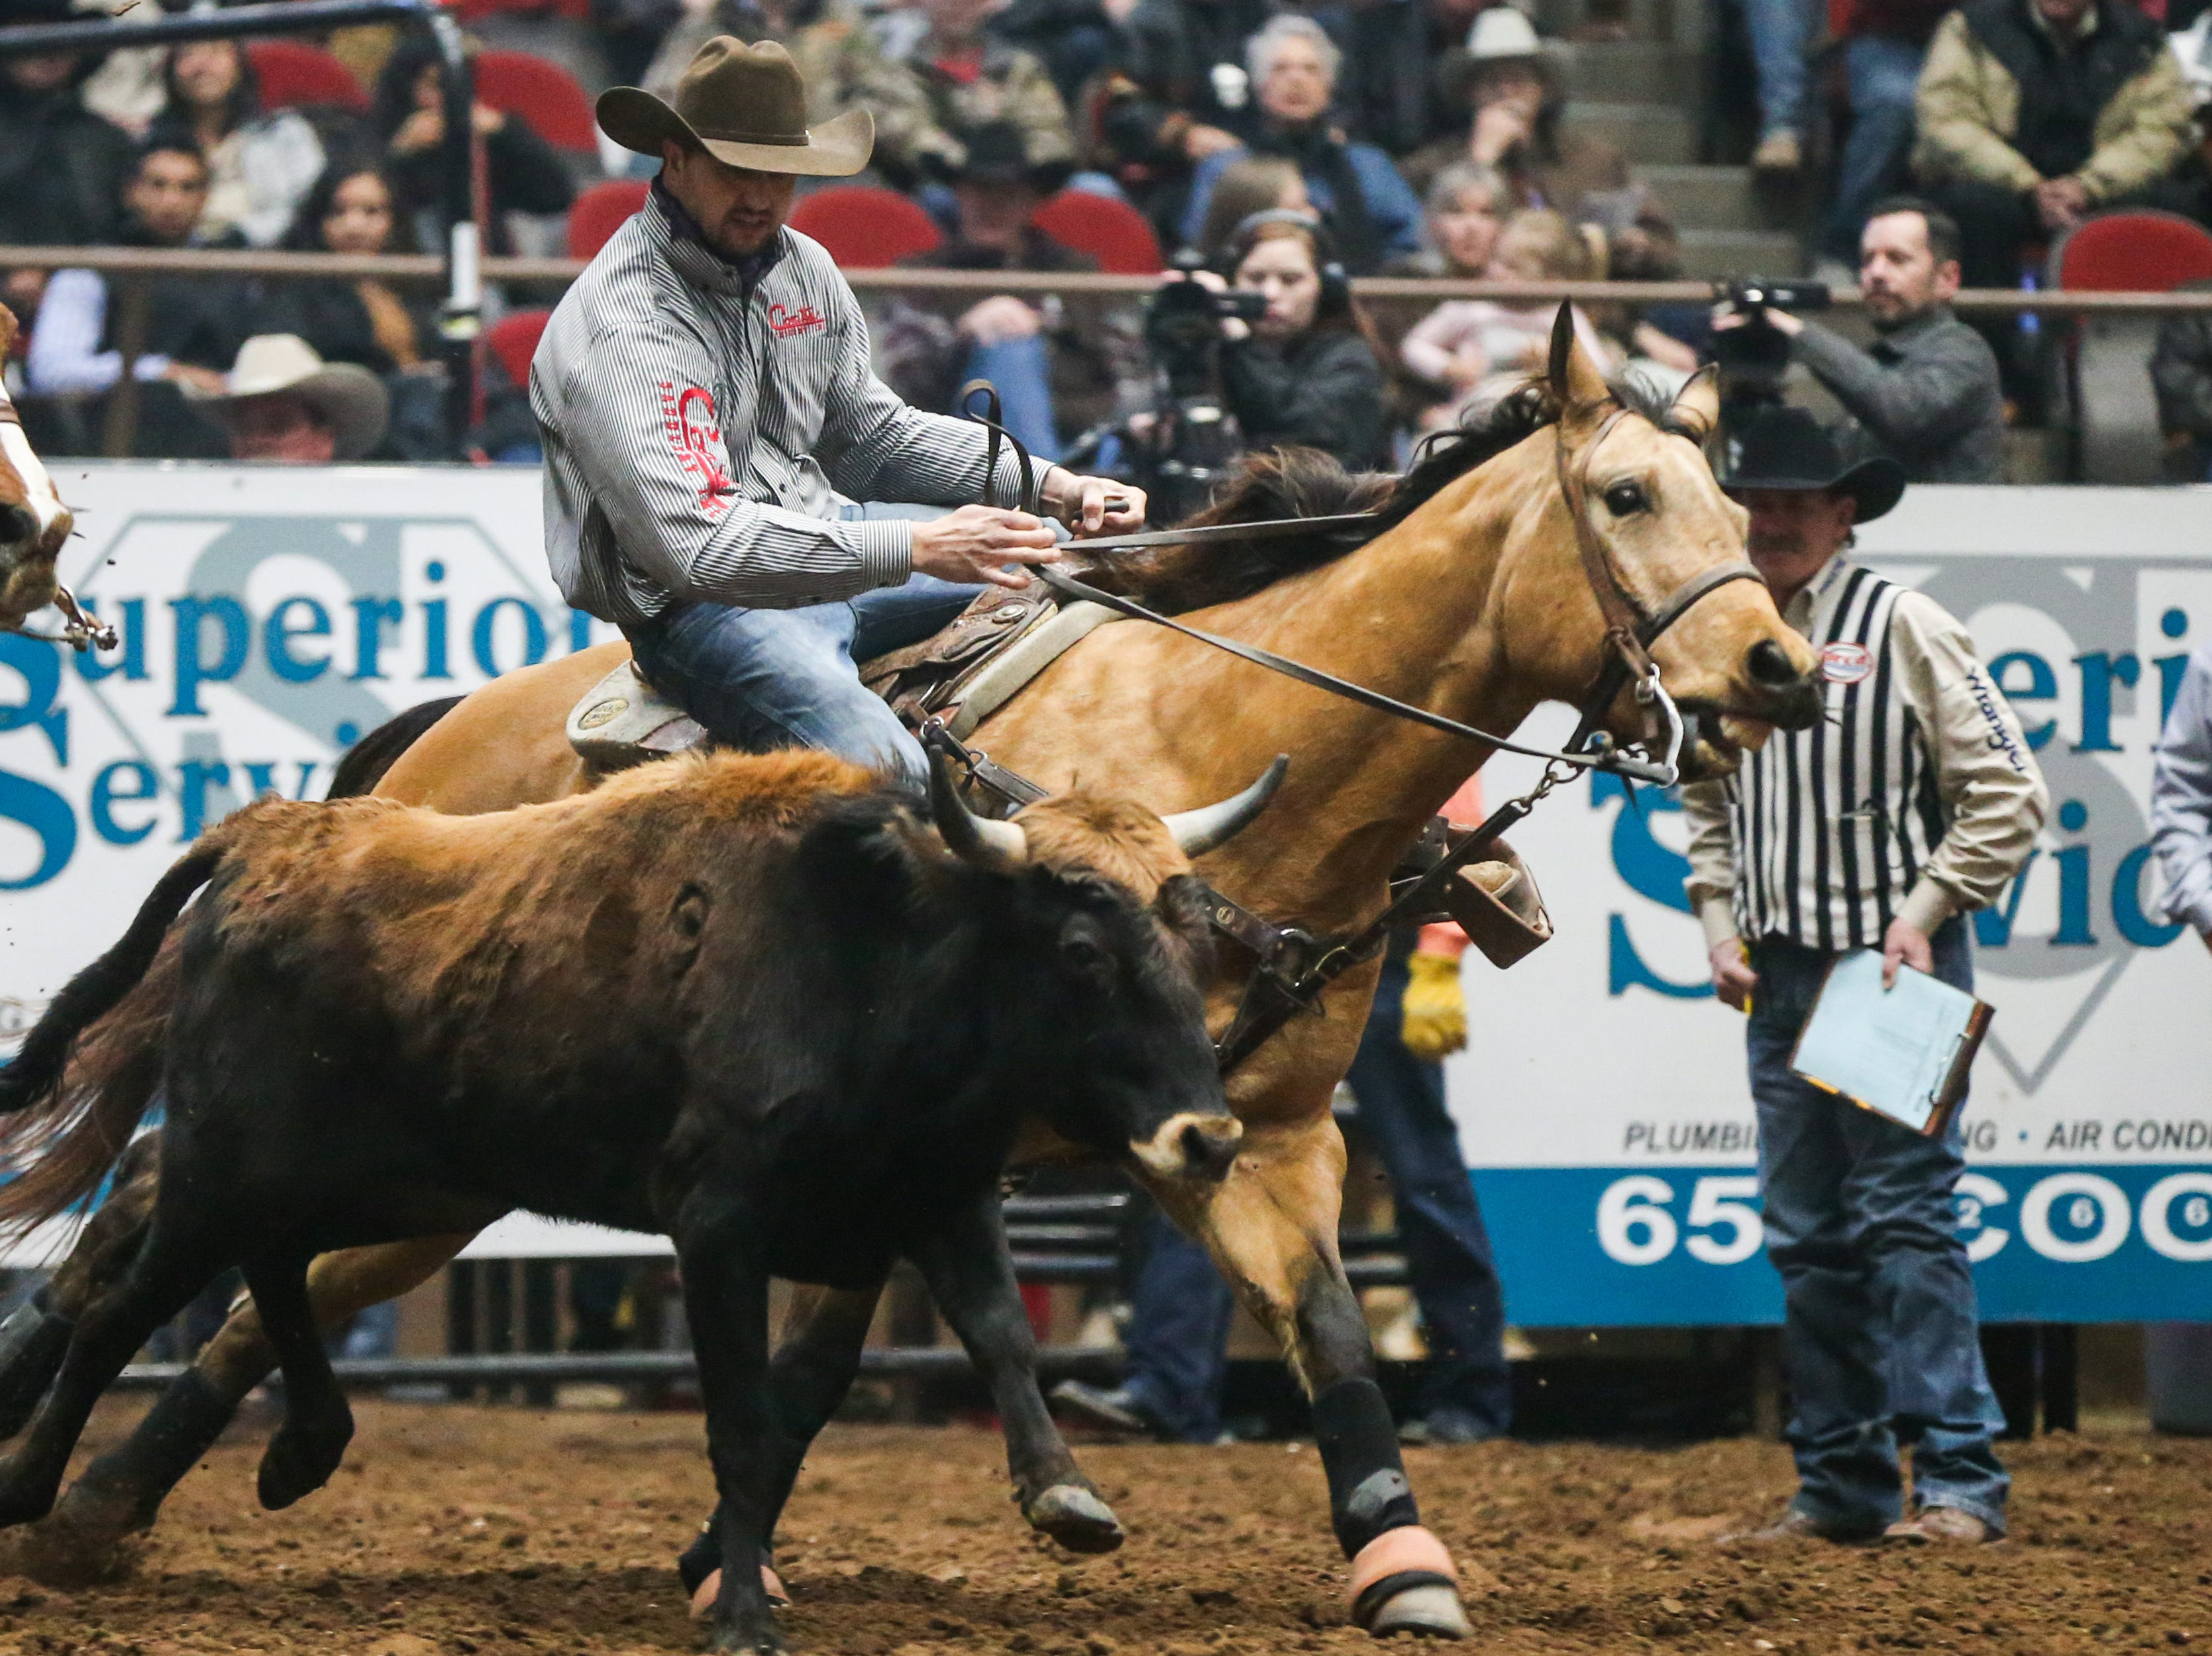 Derek Stewart rides out to wrestle a steer during the 5th performance of the San Angelo Stock Show & Rodeo Friday, Feb. 8, 2019, at Foster Communications Coliseum.